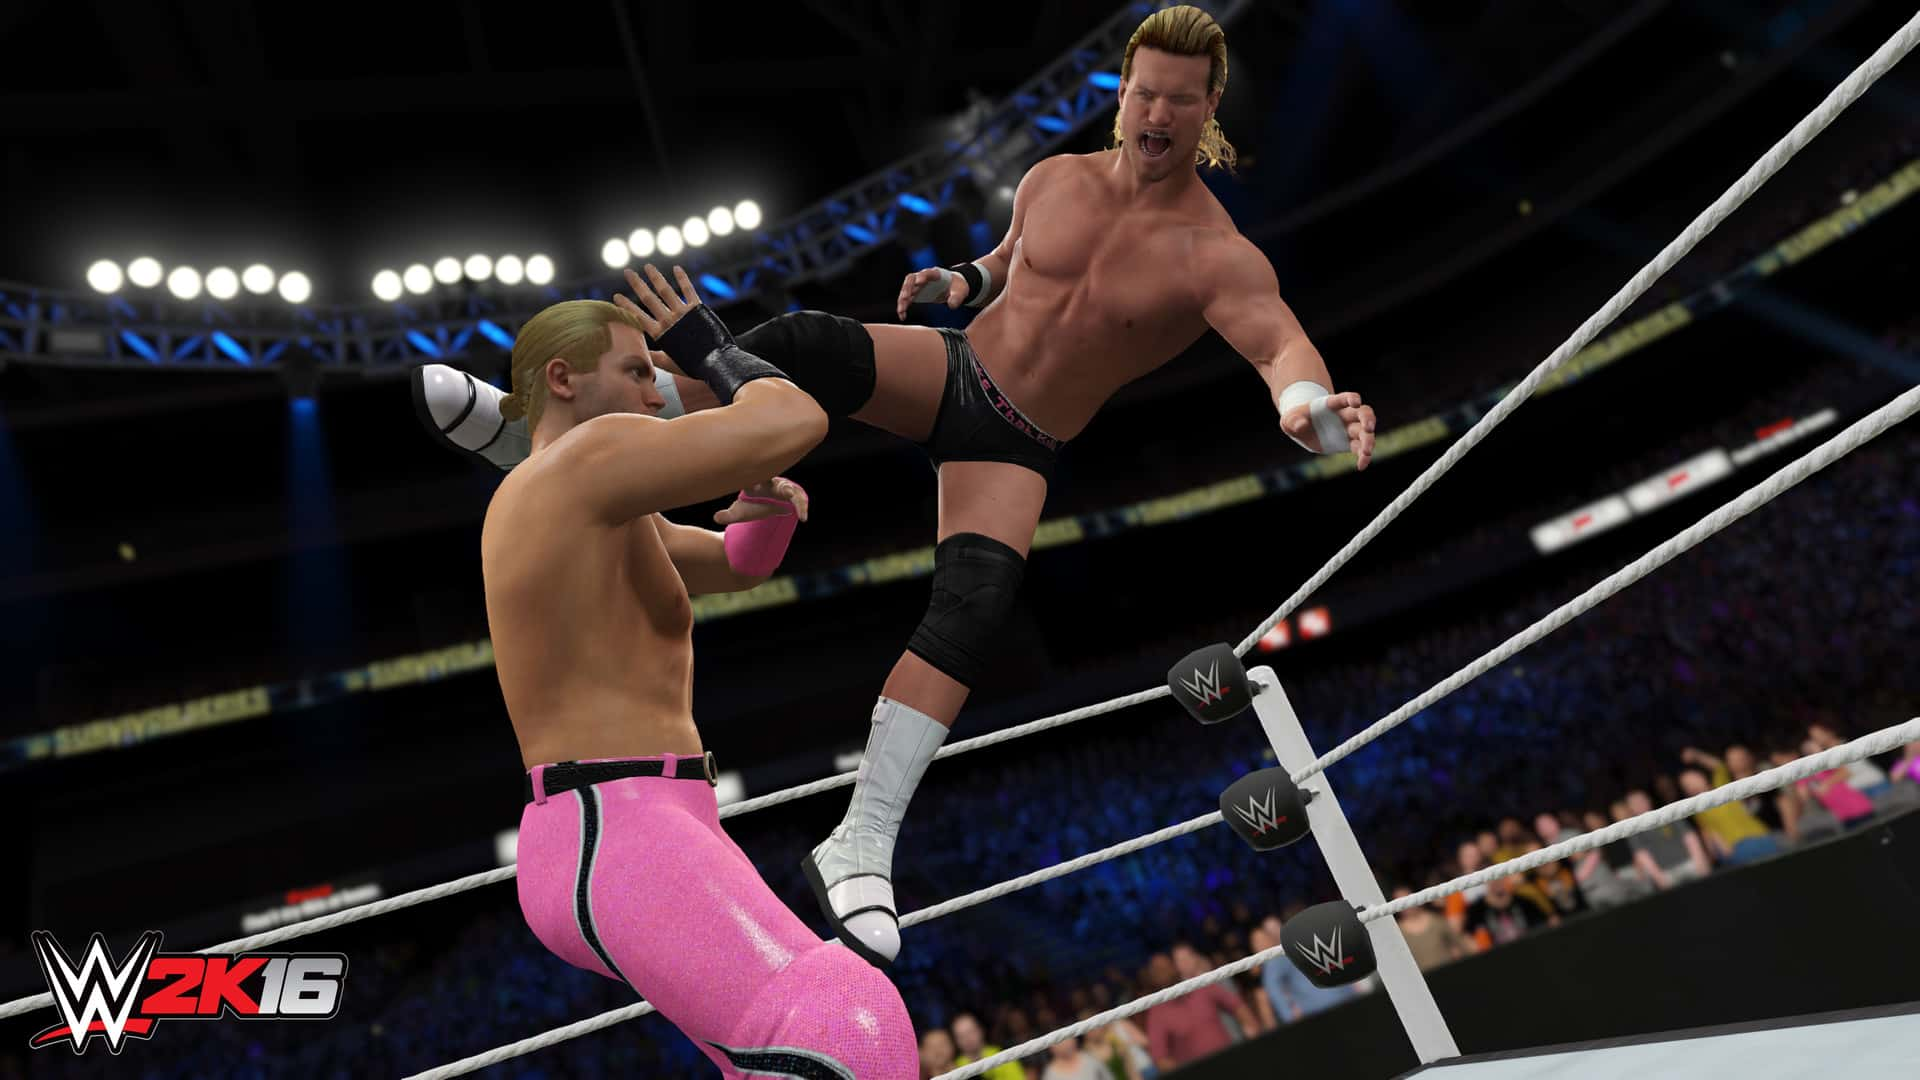 Download wwe 2k16 for pc ~ cn pro 24.